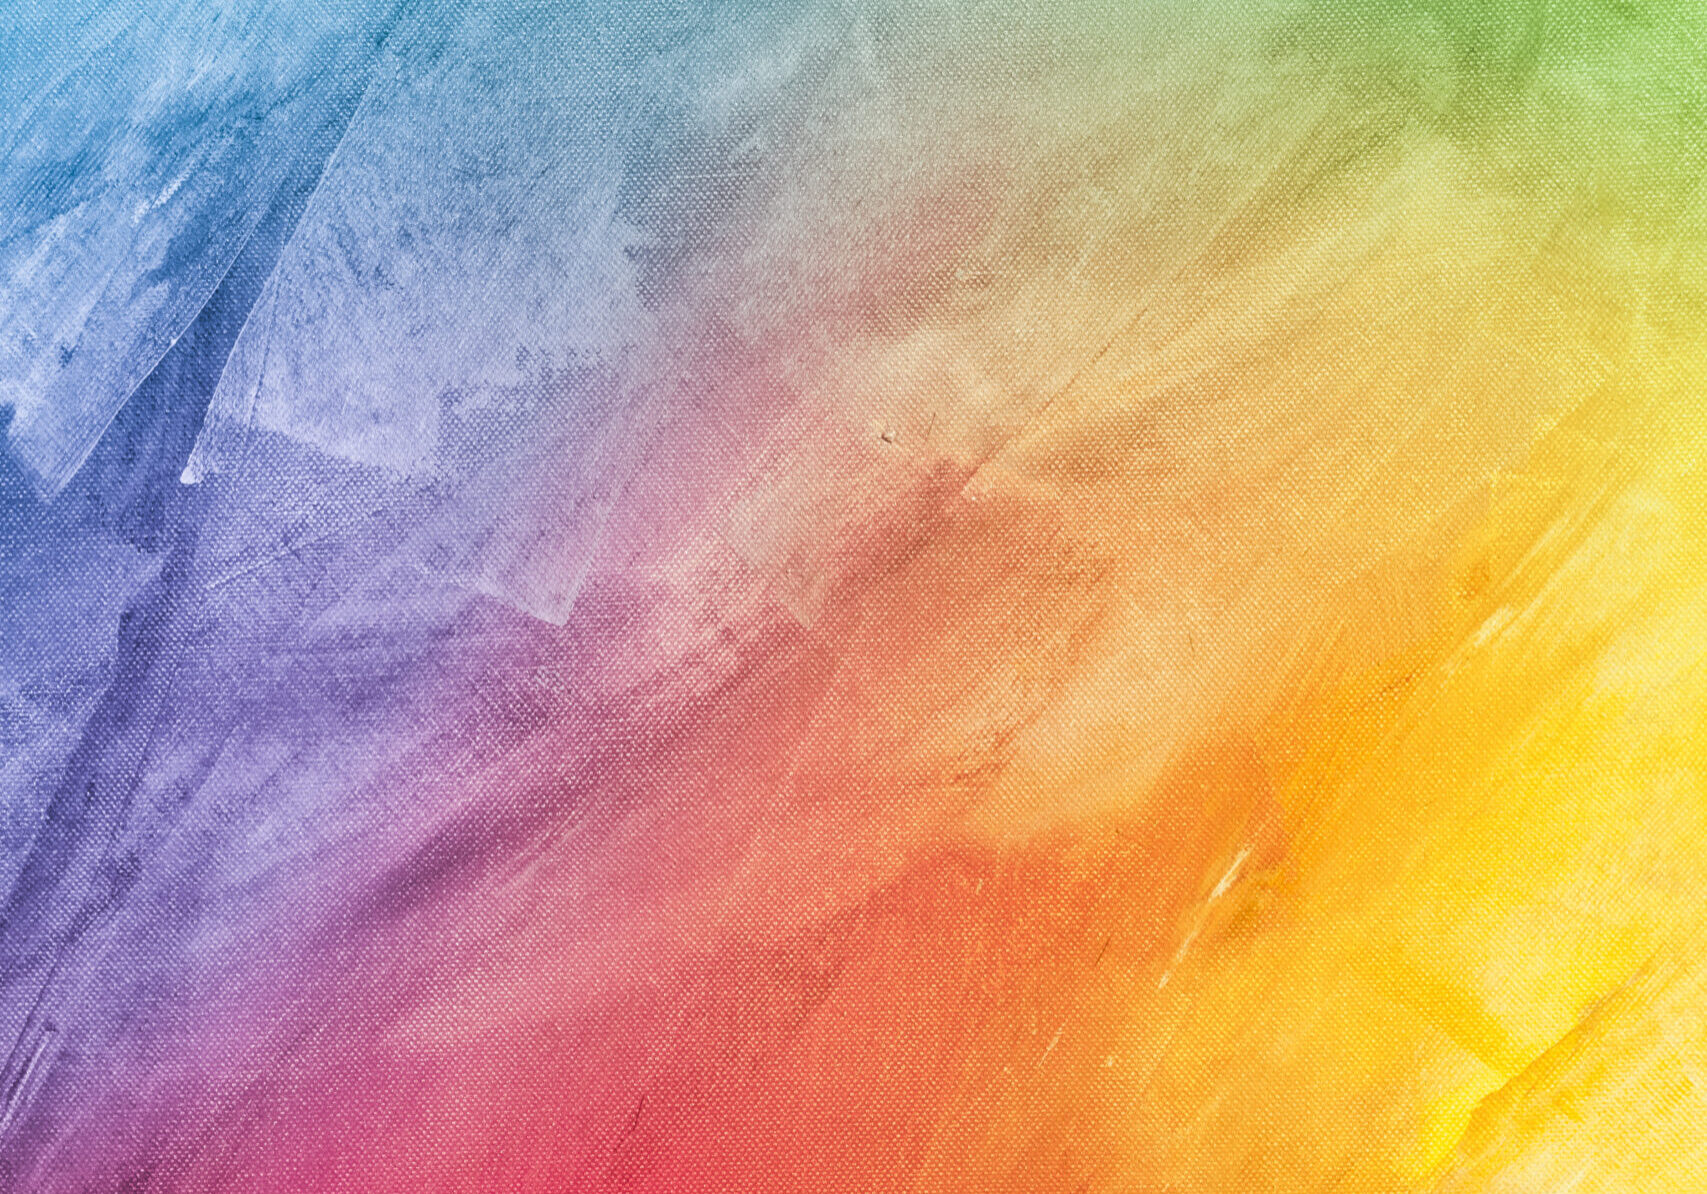 Textured rainbow painted background